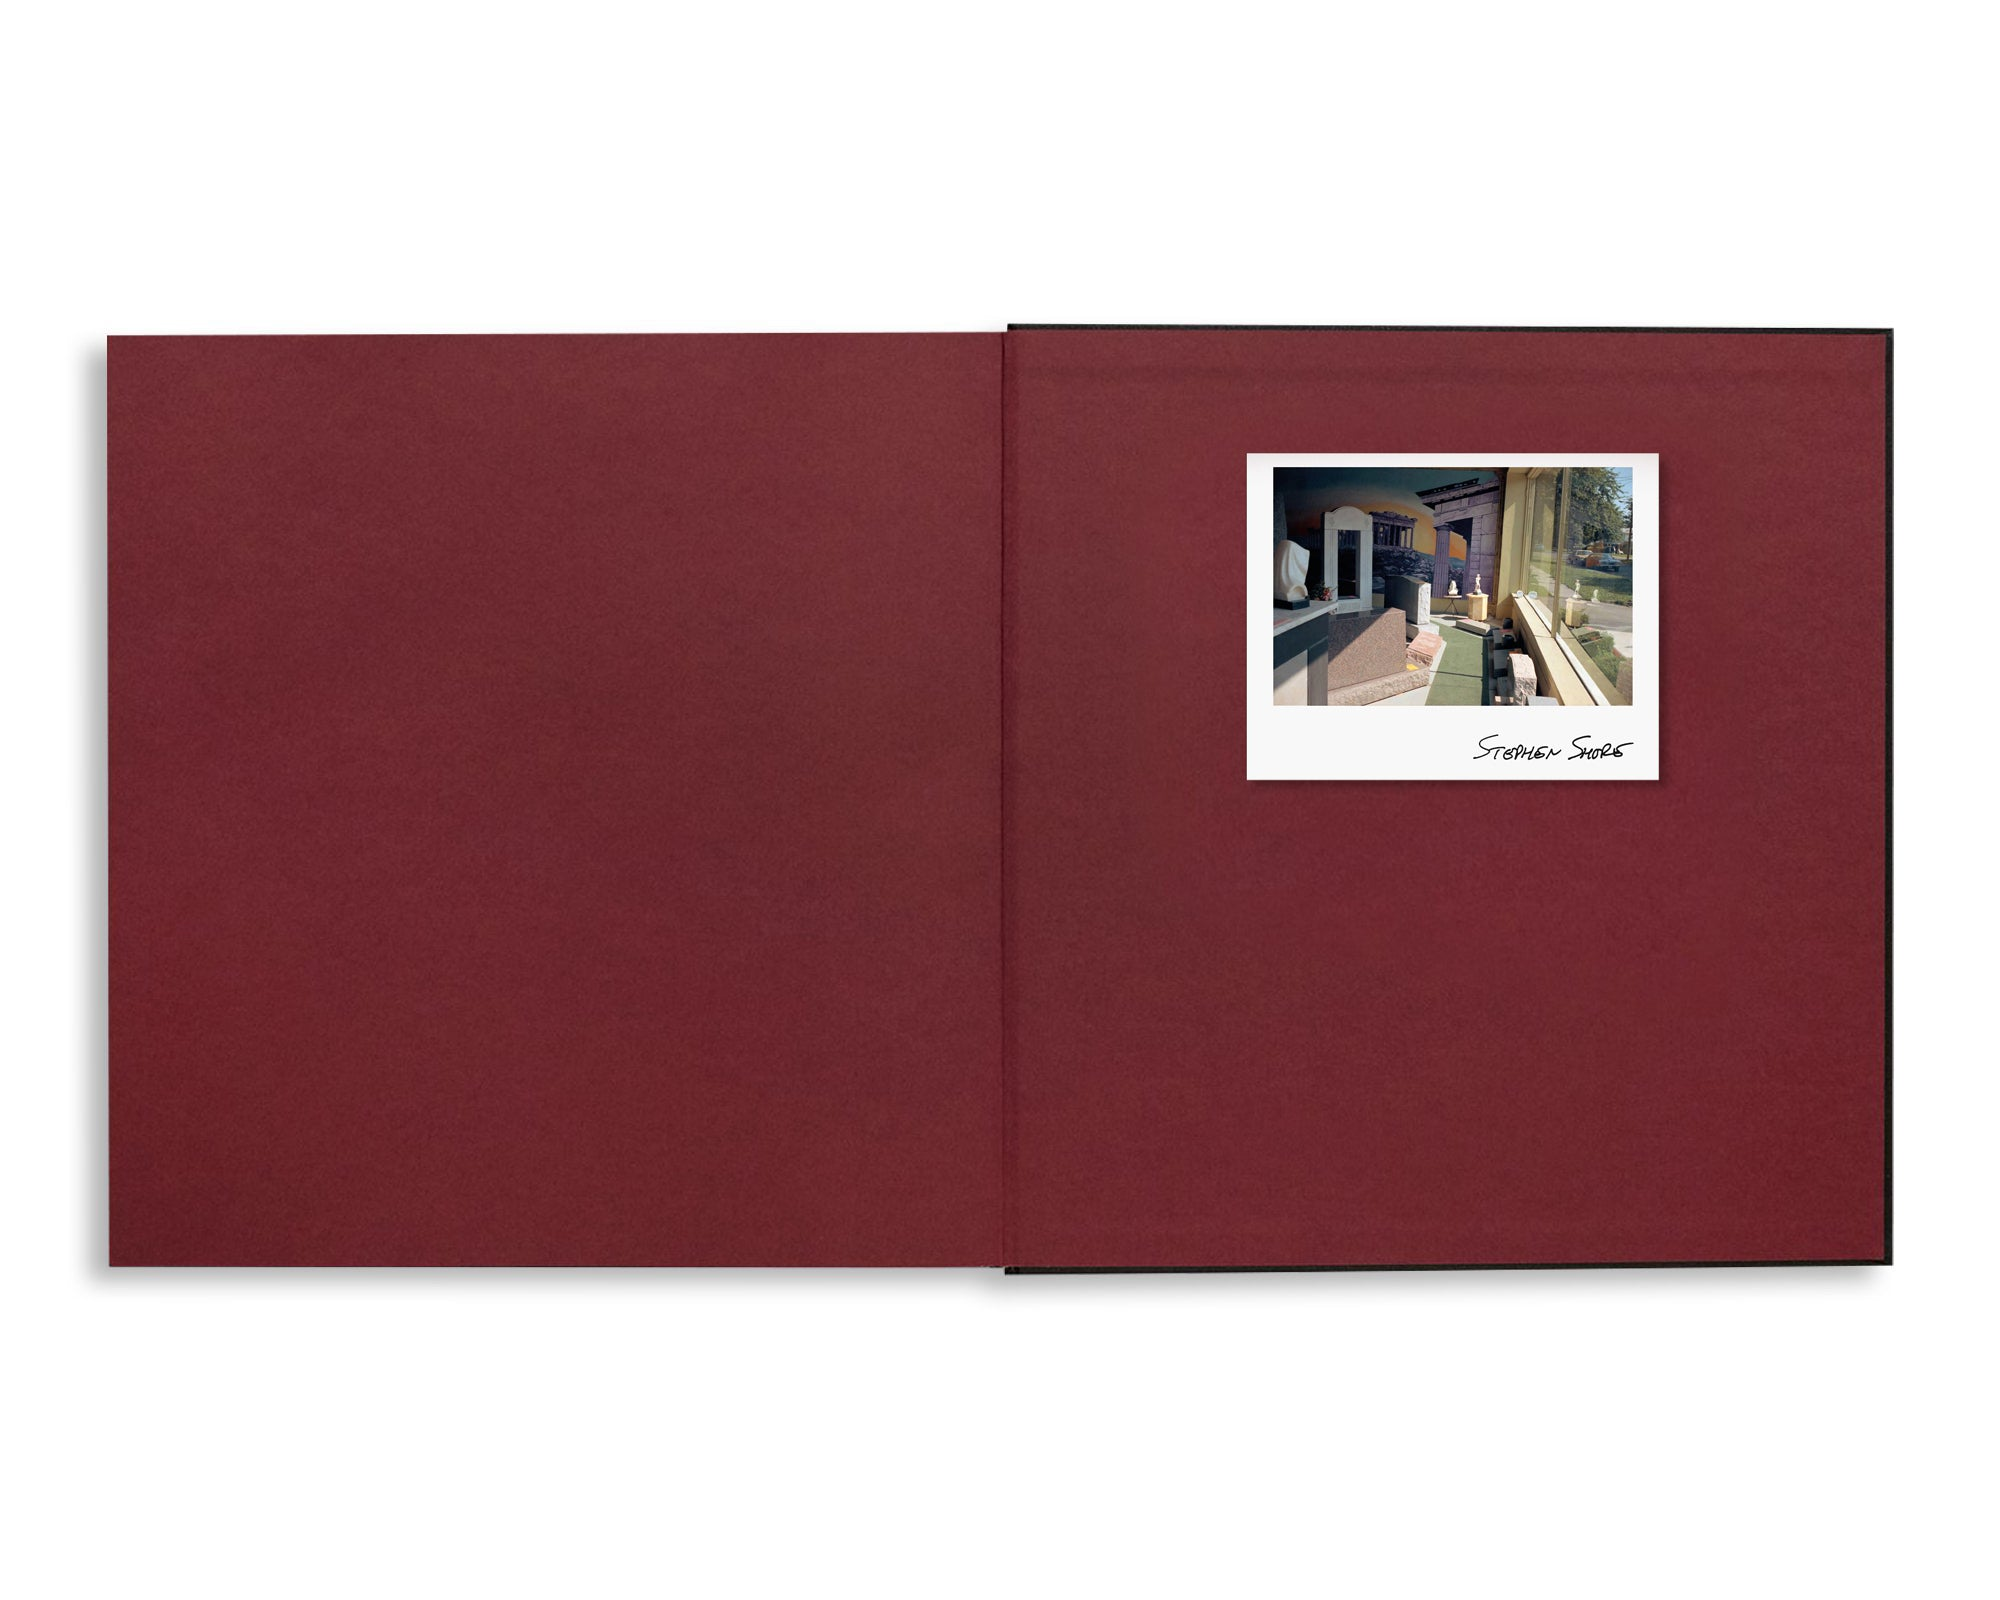 TRANSPARENCIES: SMALL CAMERA WORKS 1971-1979 by Stephen Shore [SIGNED]